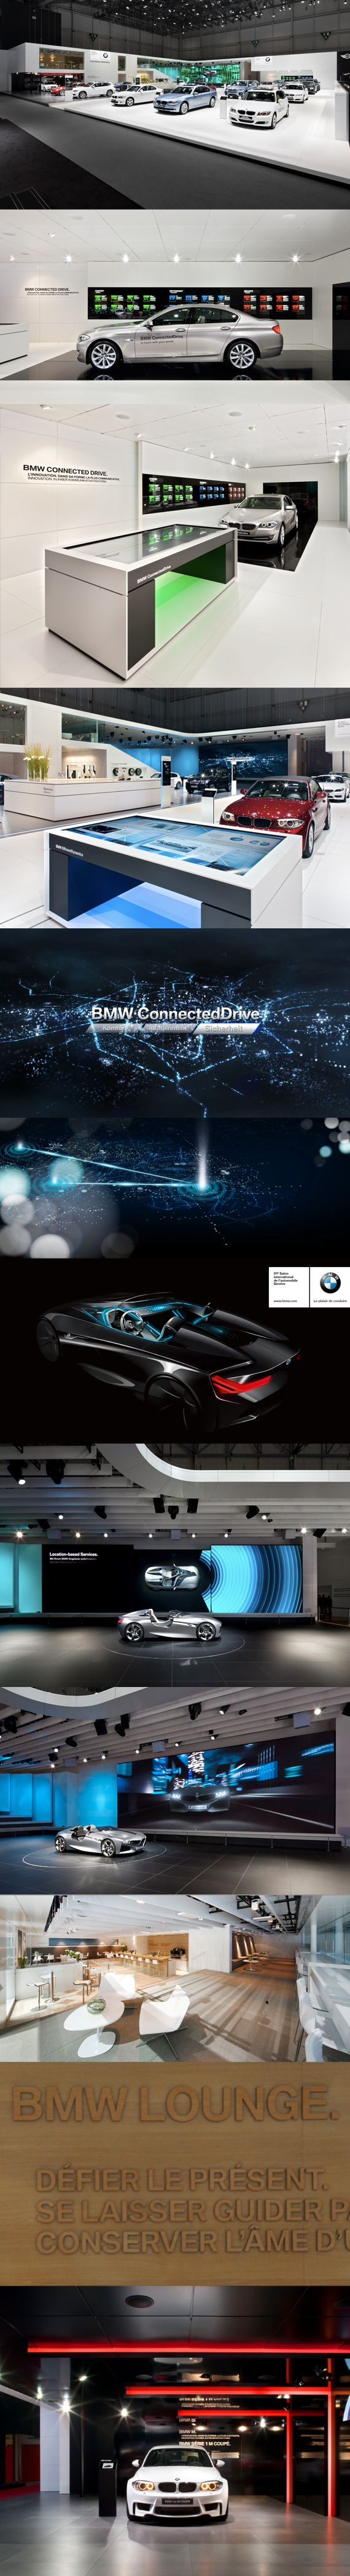 BMW Geneva 2011 | The BMW ConnectedDrive Innovations are the central focus of the entire BMW trade fair stand communications. BMW is presenting the future of intelligent Interaction between the vehicle, its passengers and the vehicle environment. The key was to make complex techology something that the public can experience and appreciate effectively. -   like the interactive screens and impact